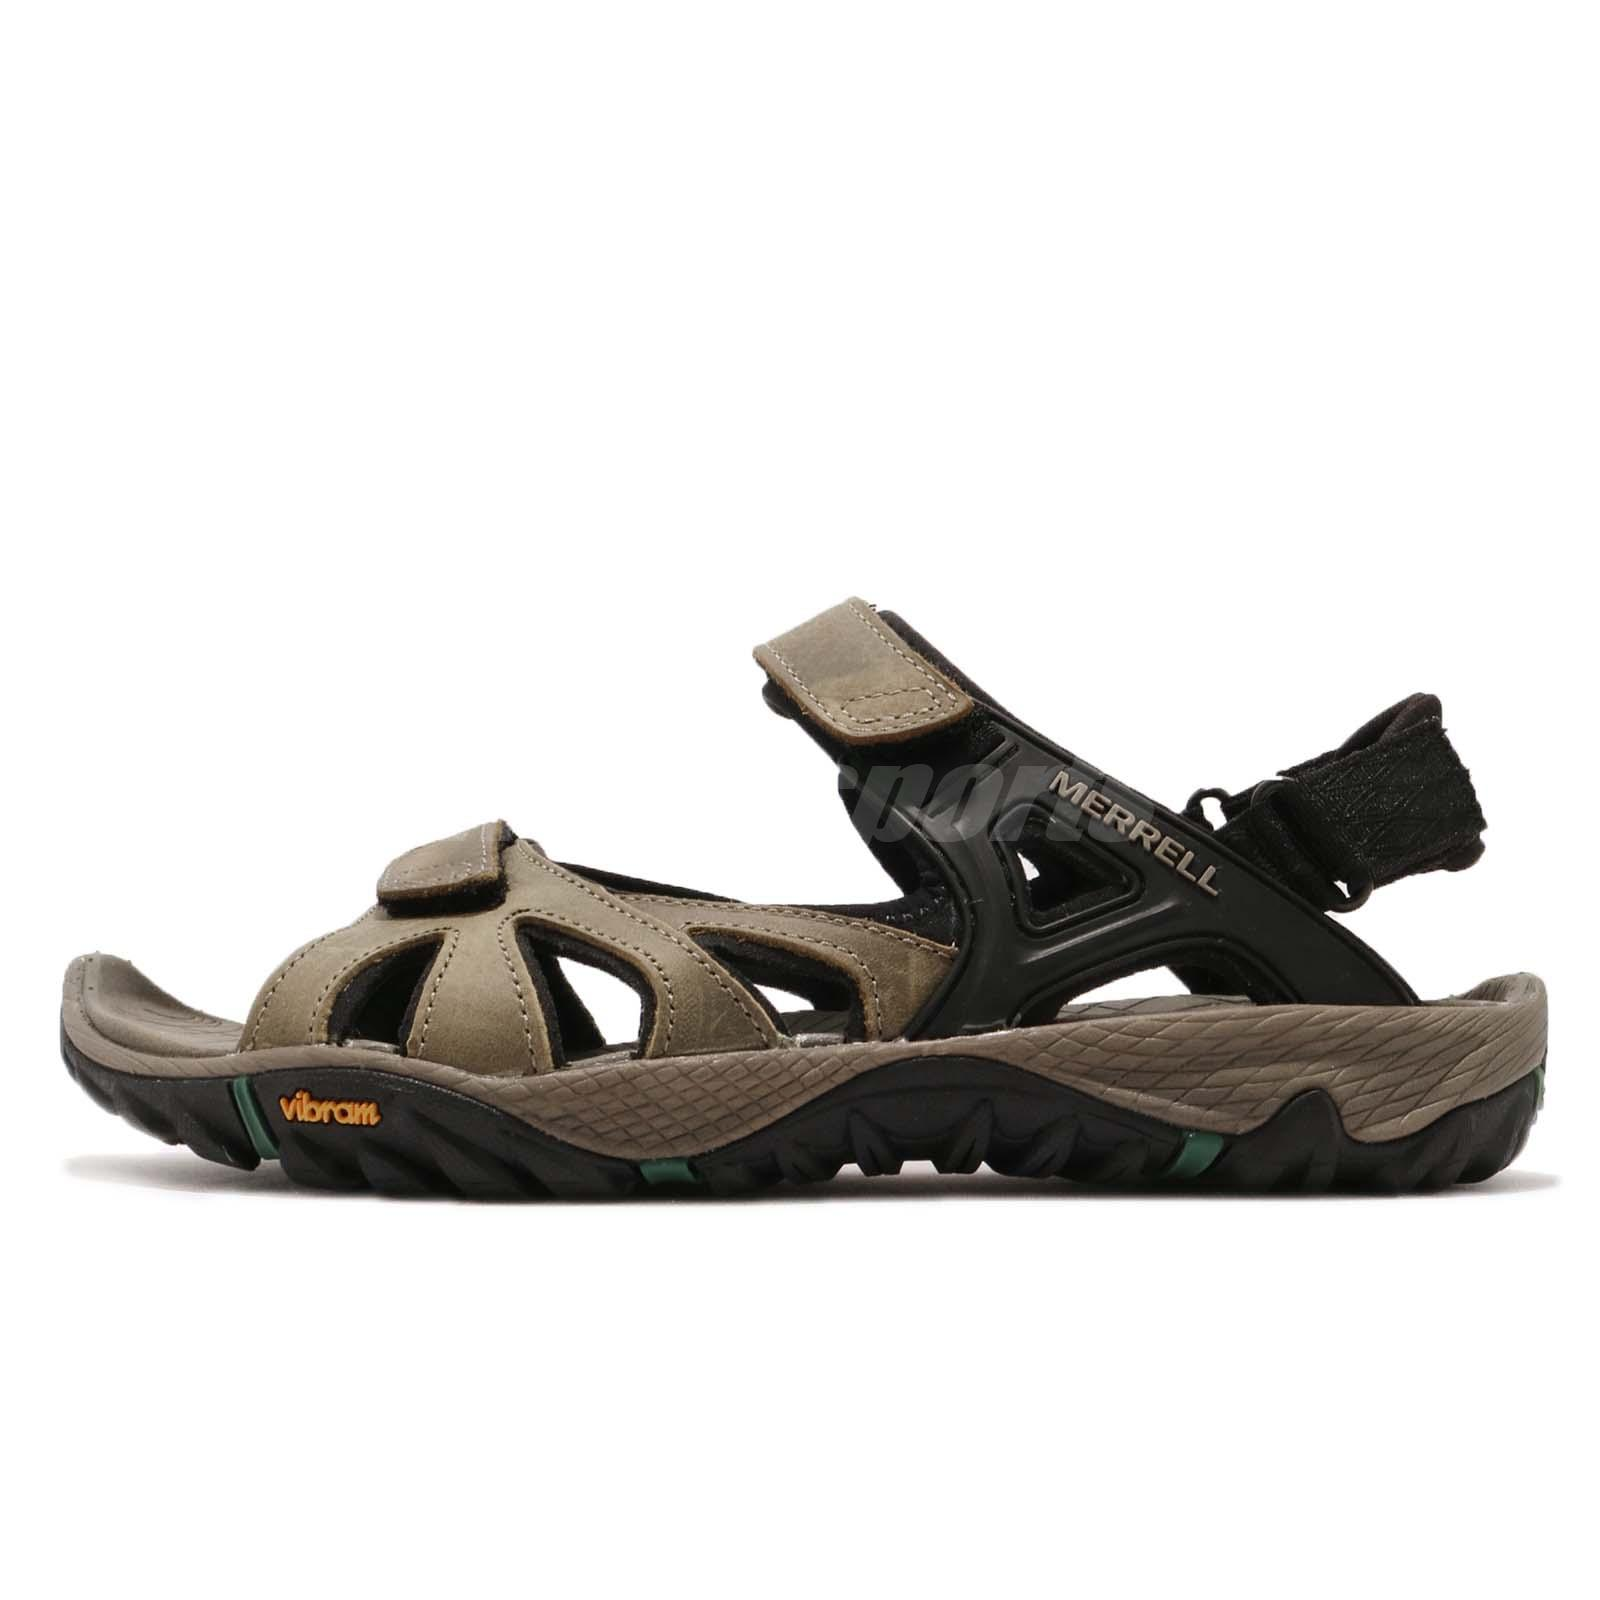 465c25c72e8f Merrell All Out Blaze Sieve Convertible Brown Black Men Sports Sandal J12649